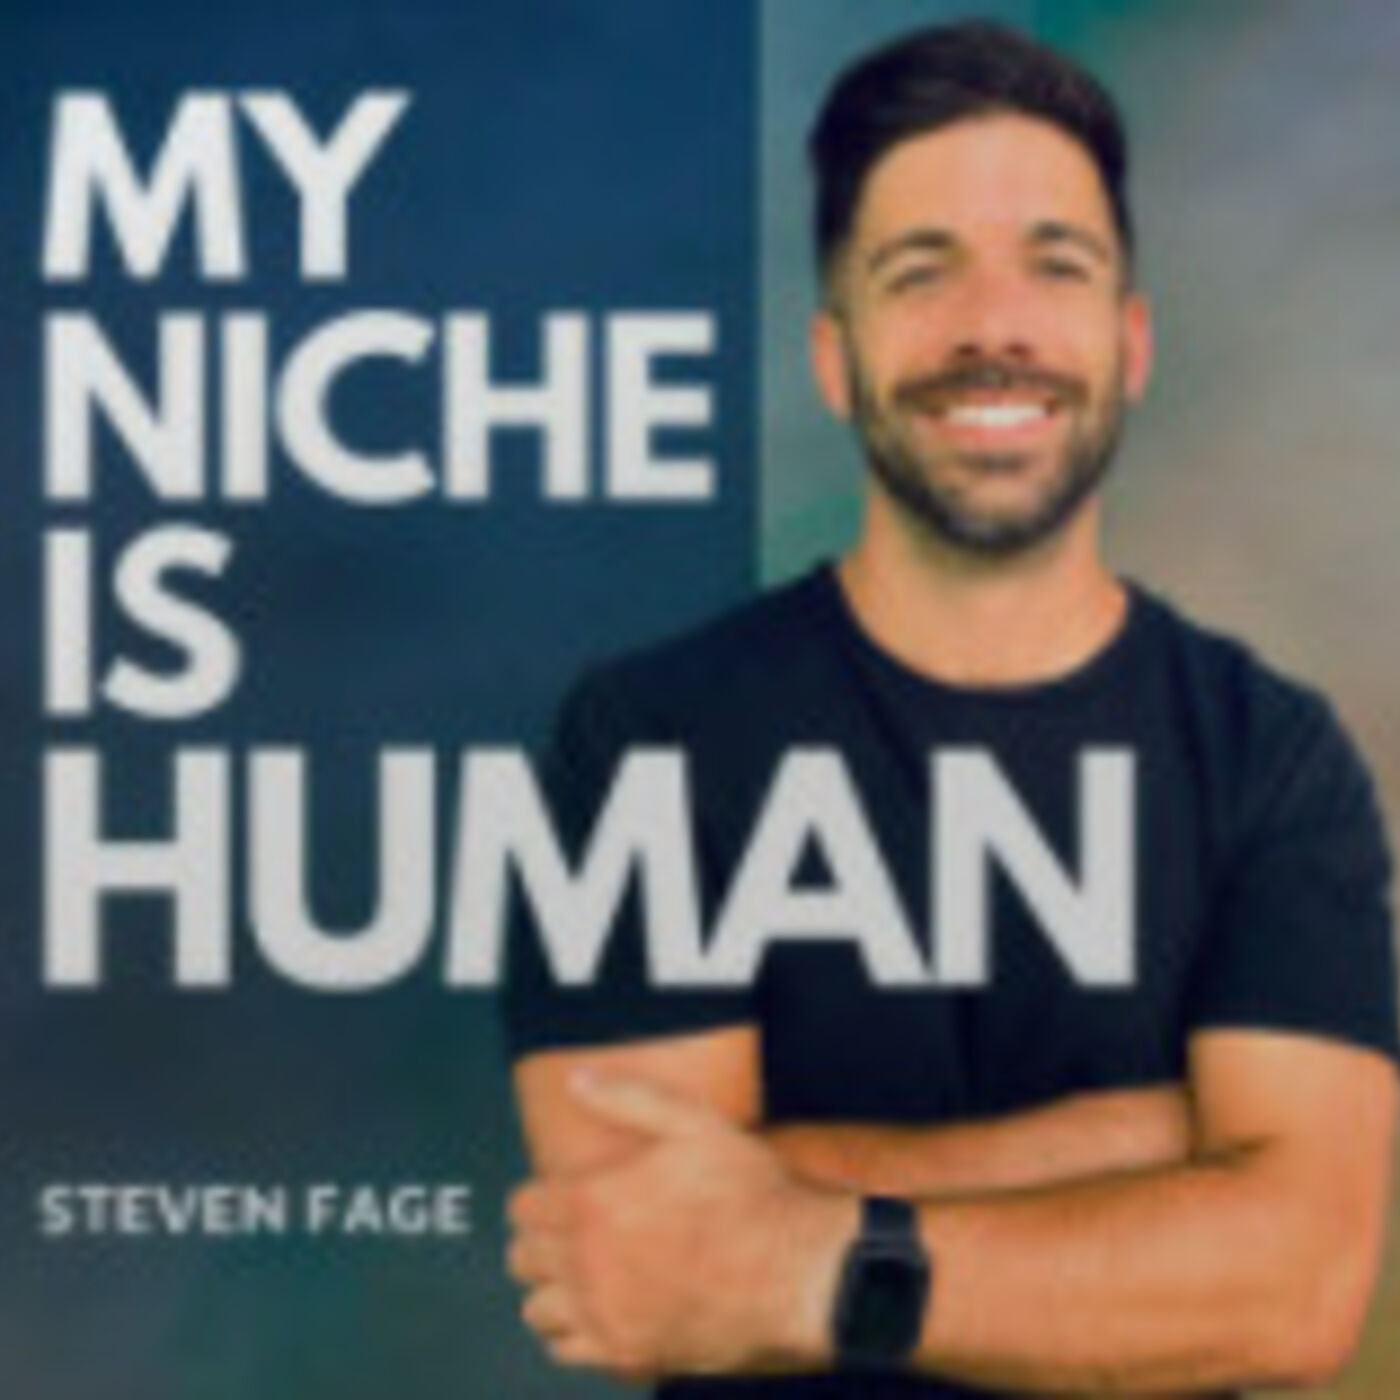 """My Niche is Human"" Podcast Host Steven Fage Joins the Show"